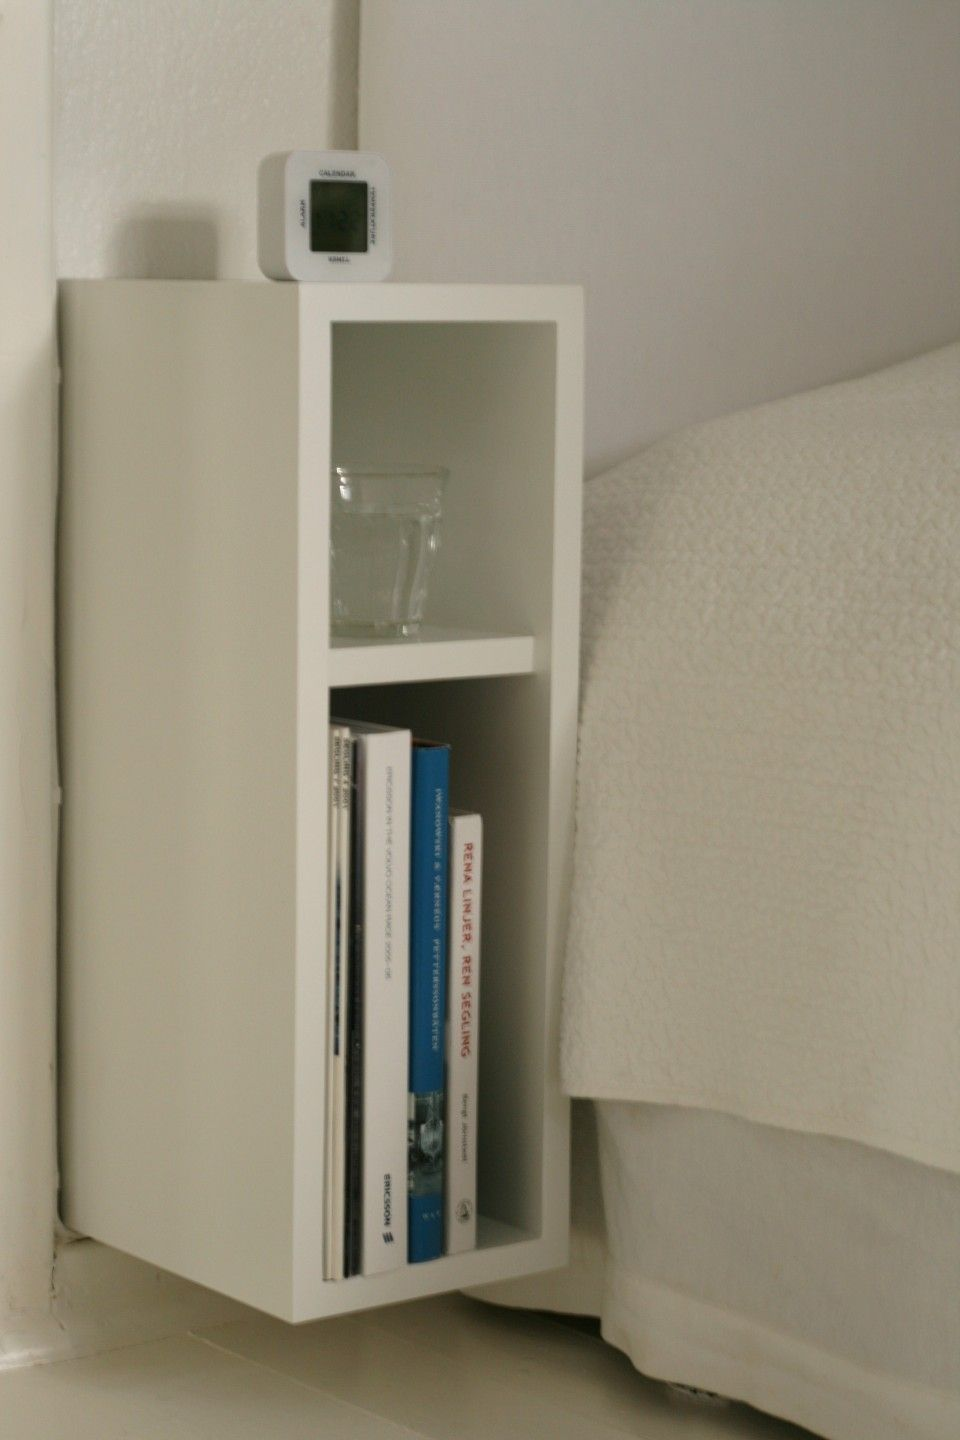 Splendid Wall Mounted Narrow Bedside Table And Cabinet Design For Book Accessories Place